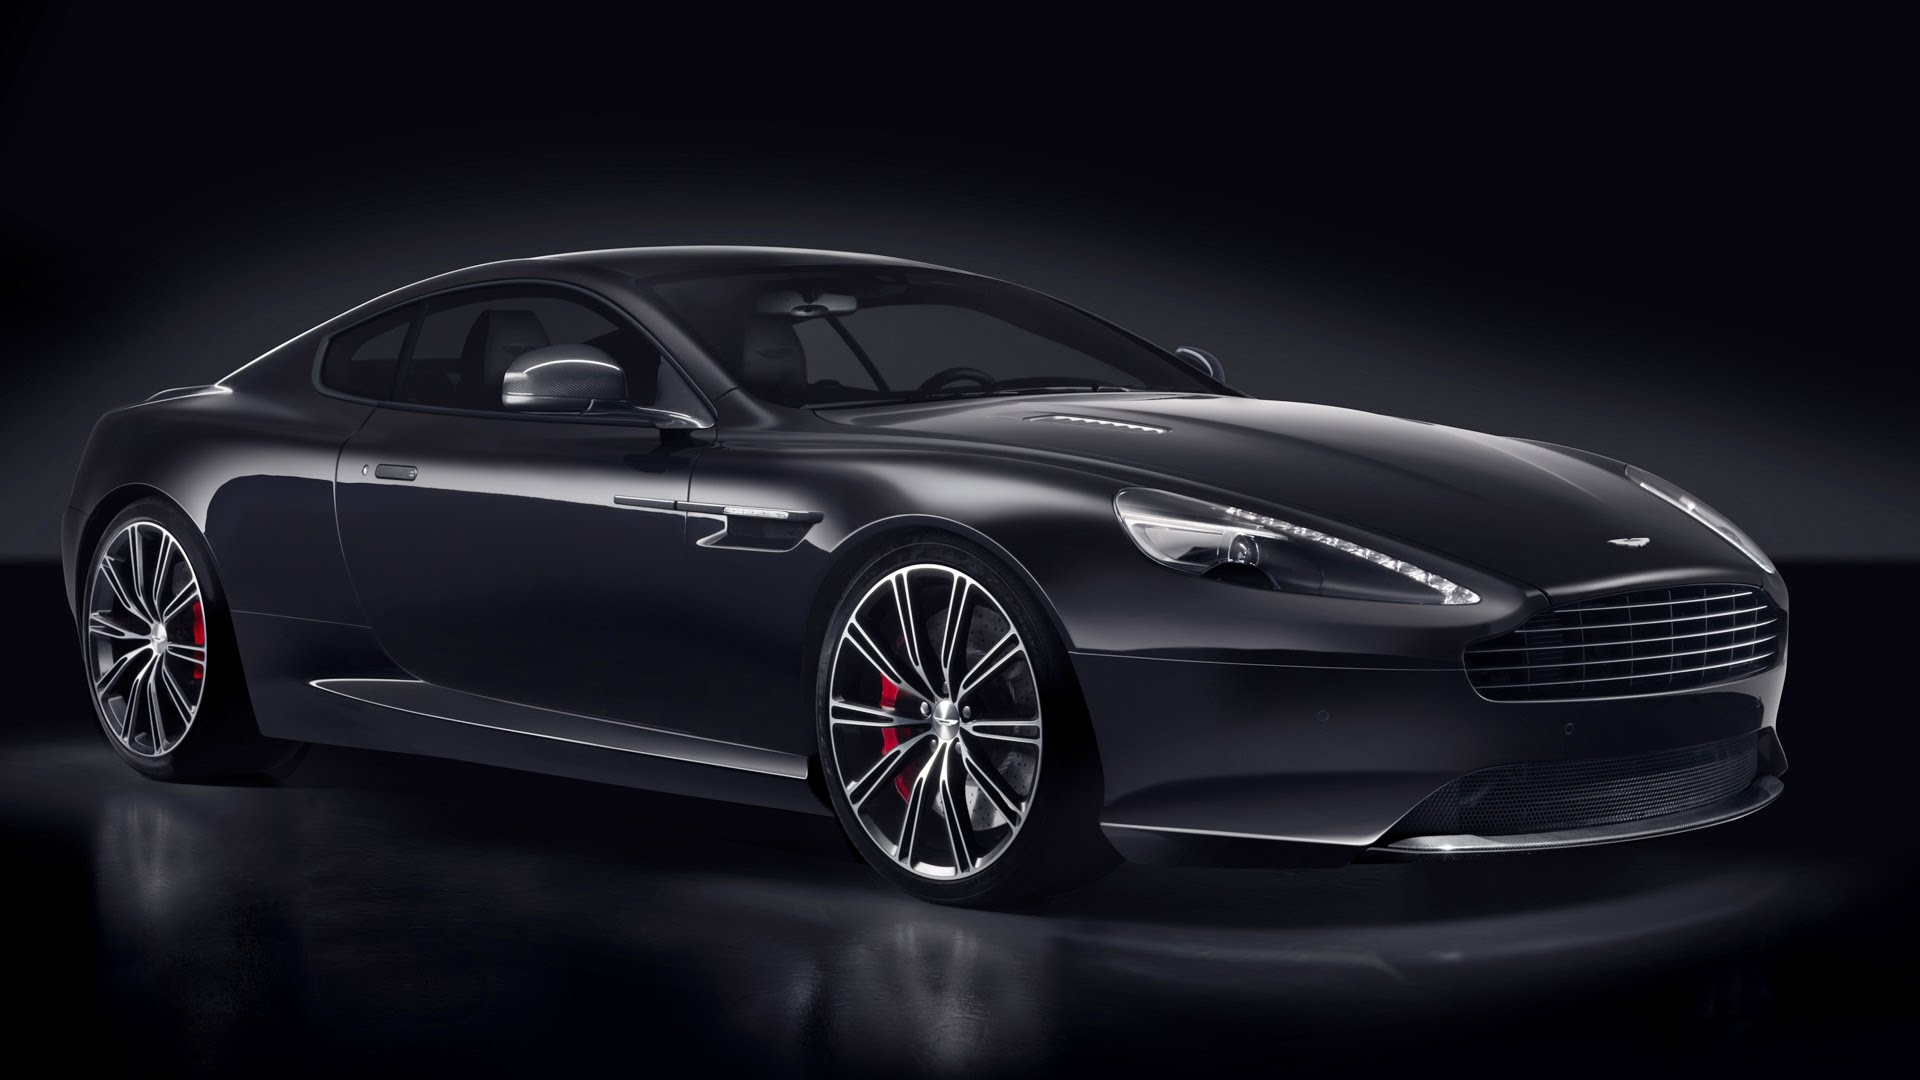 2019 Aston Martin DB9 Carbon Edition photo - 5